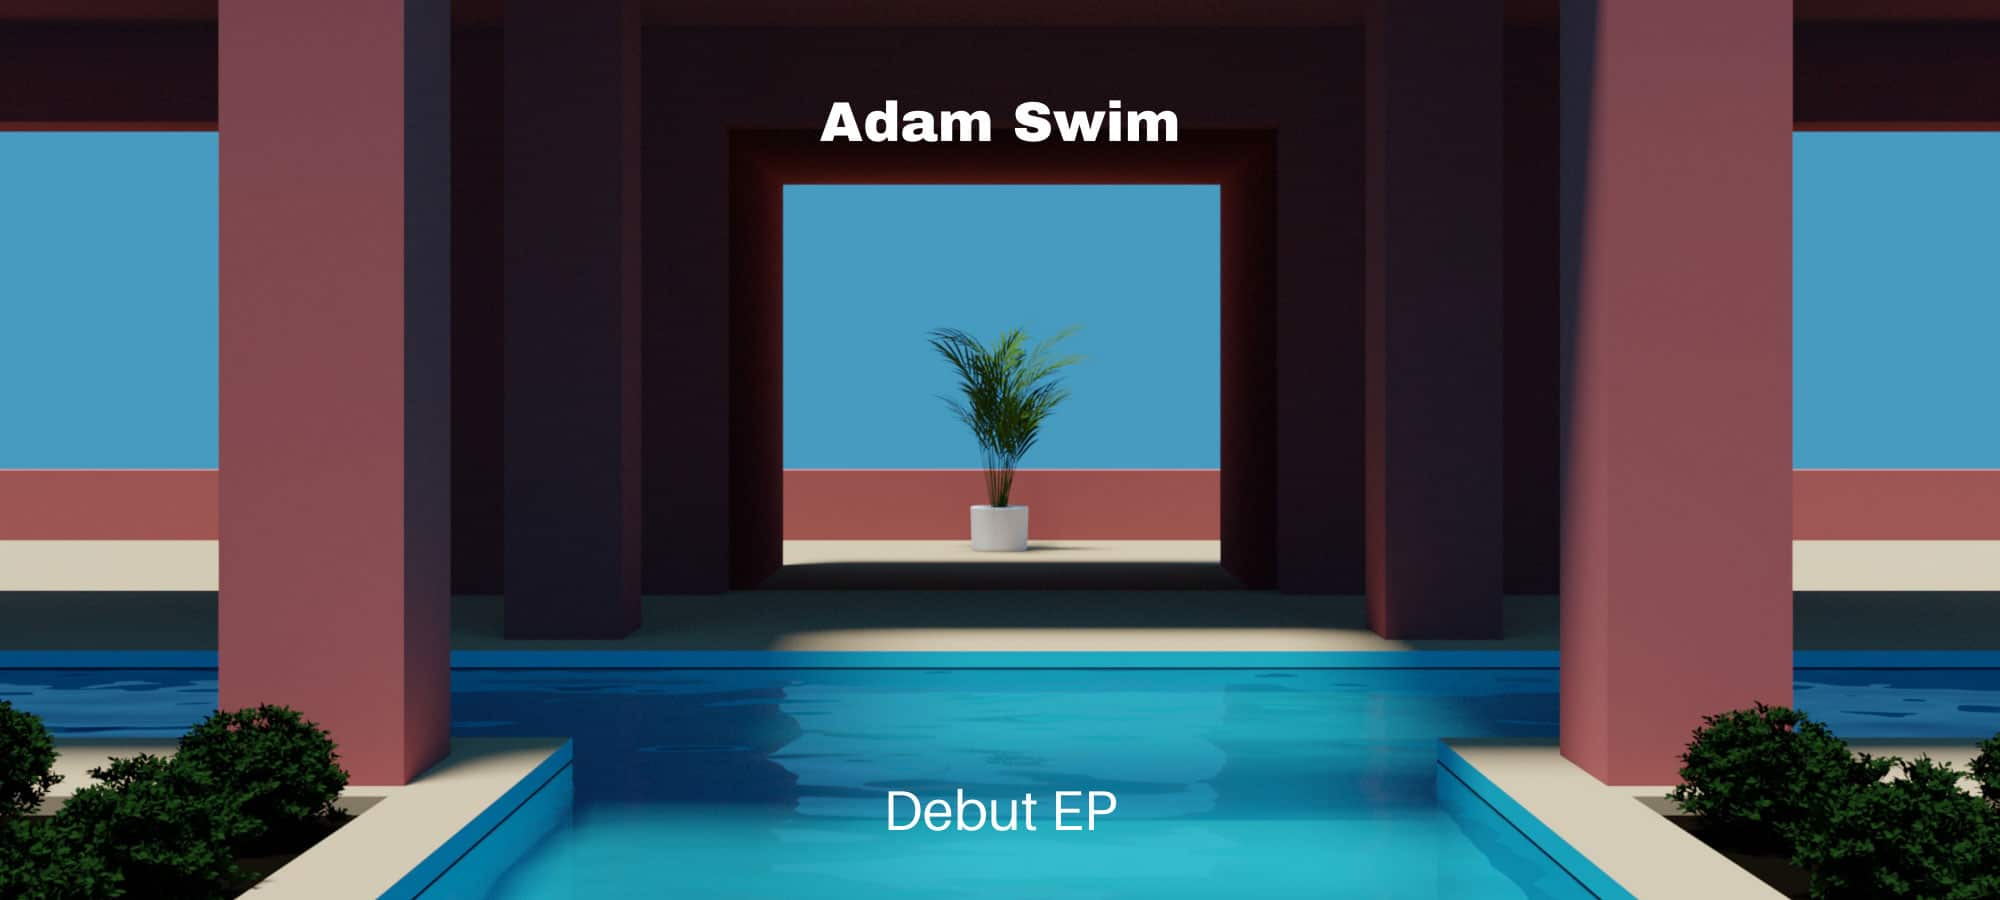 Adam Swim - Can't Sleep EP - soul deep house